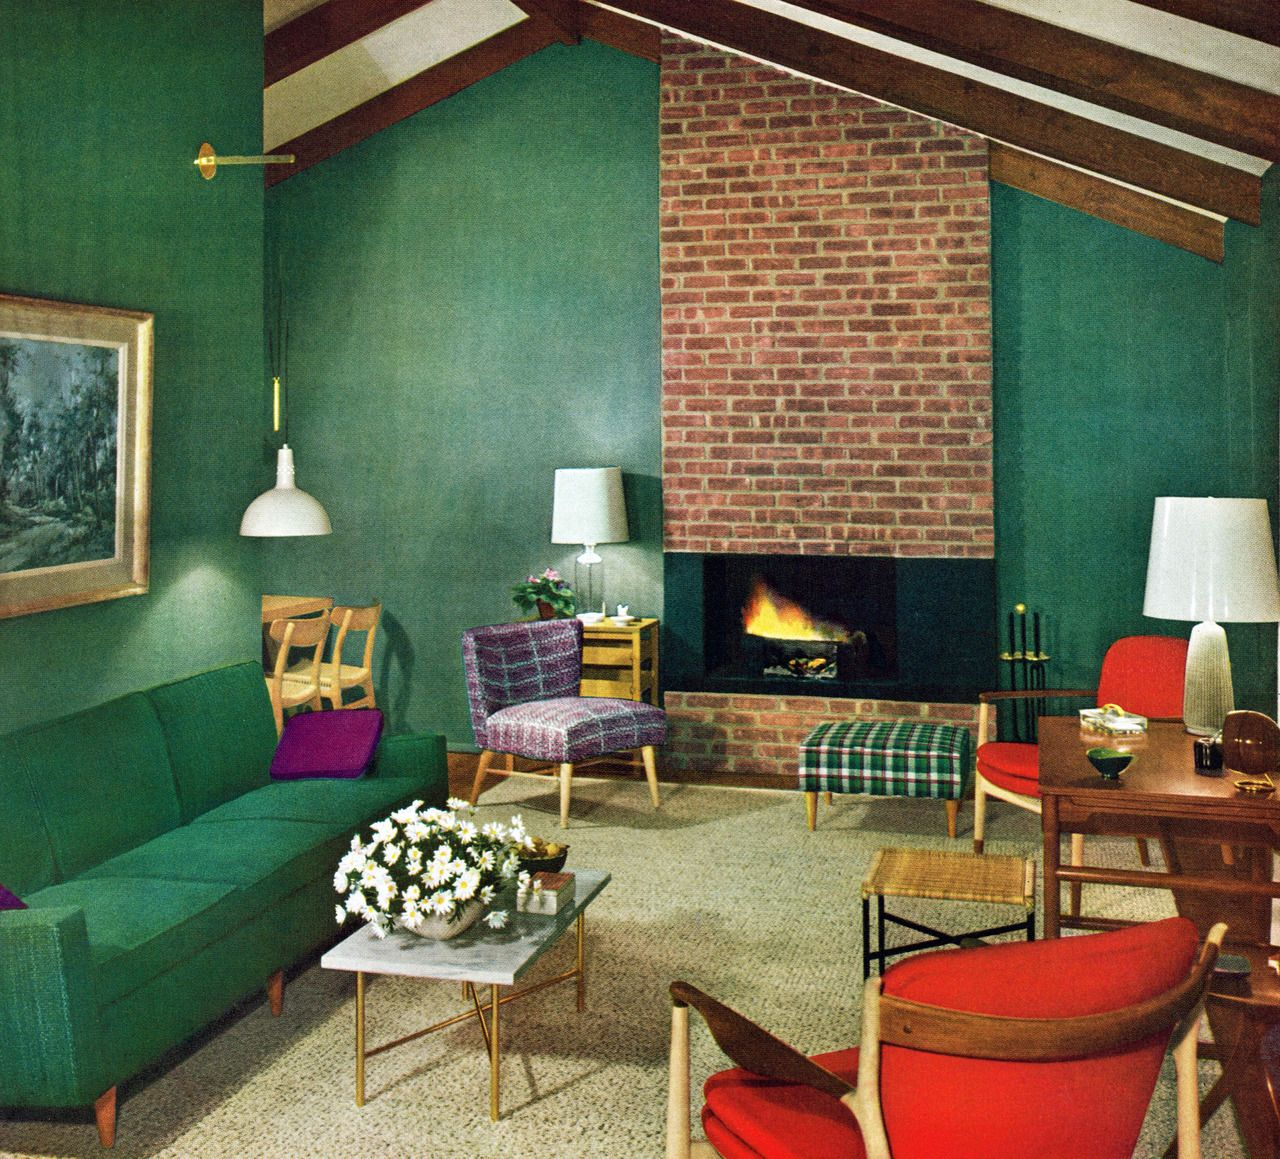 Retro Home Design Mid Century Living Room 1954 I Remember This And Think It